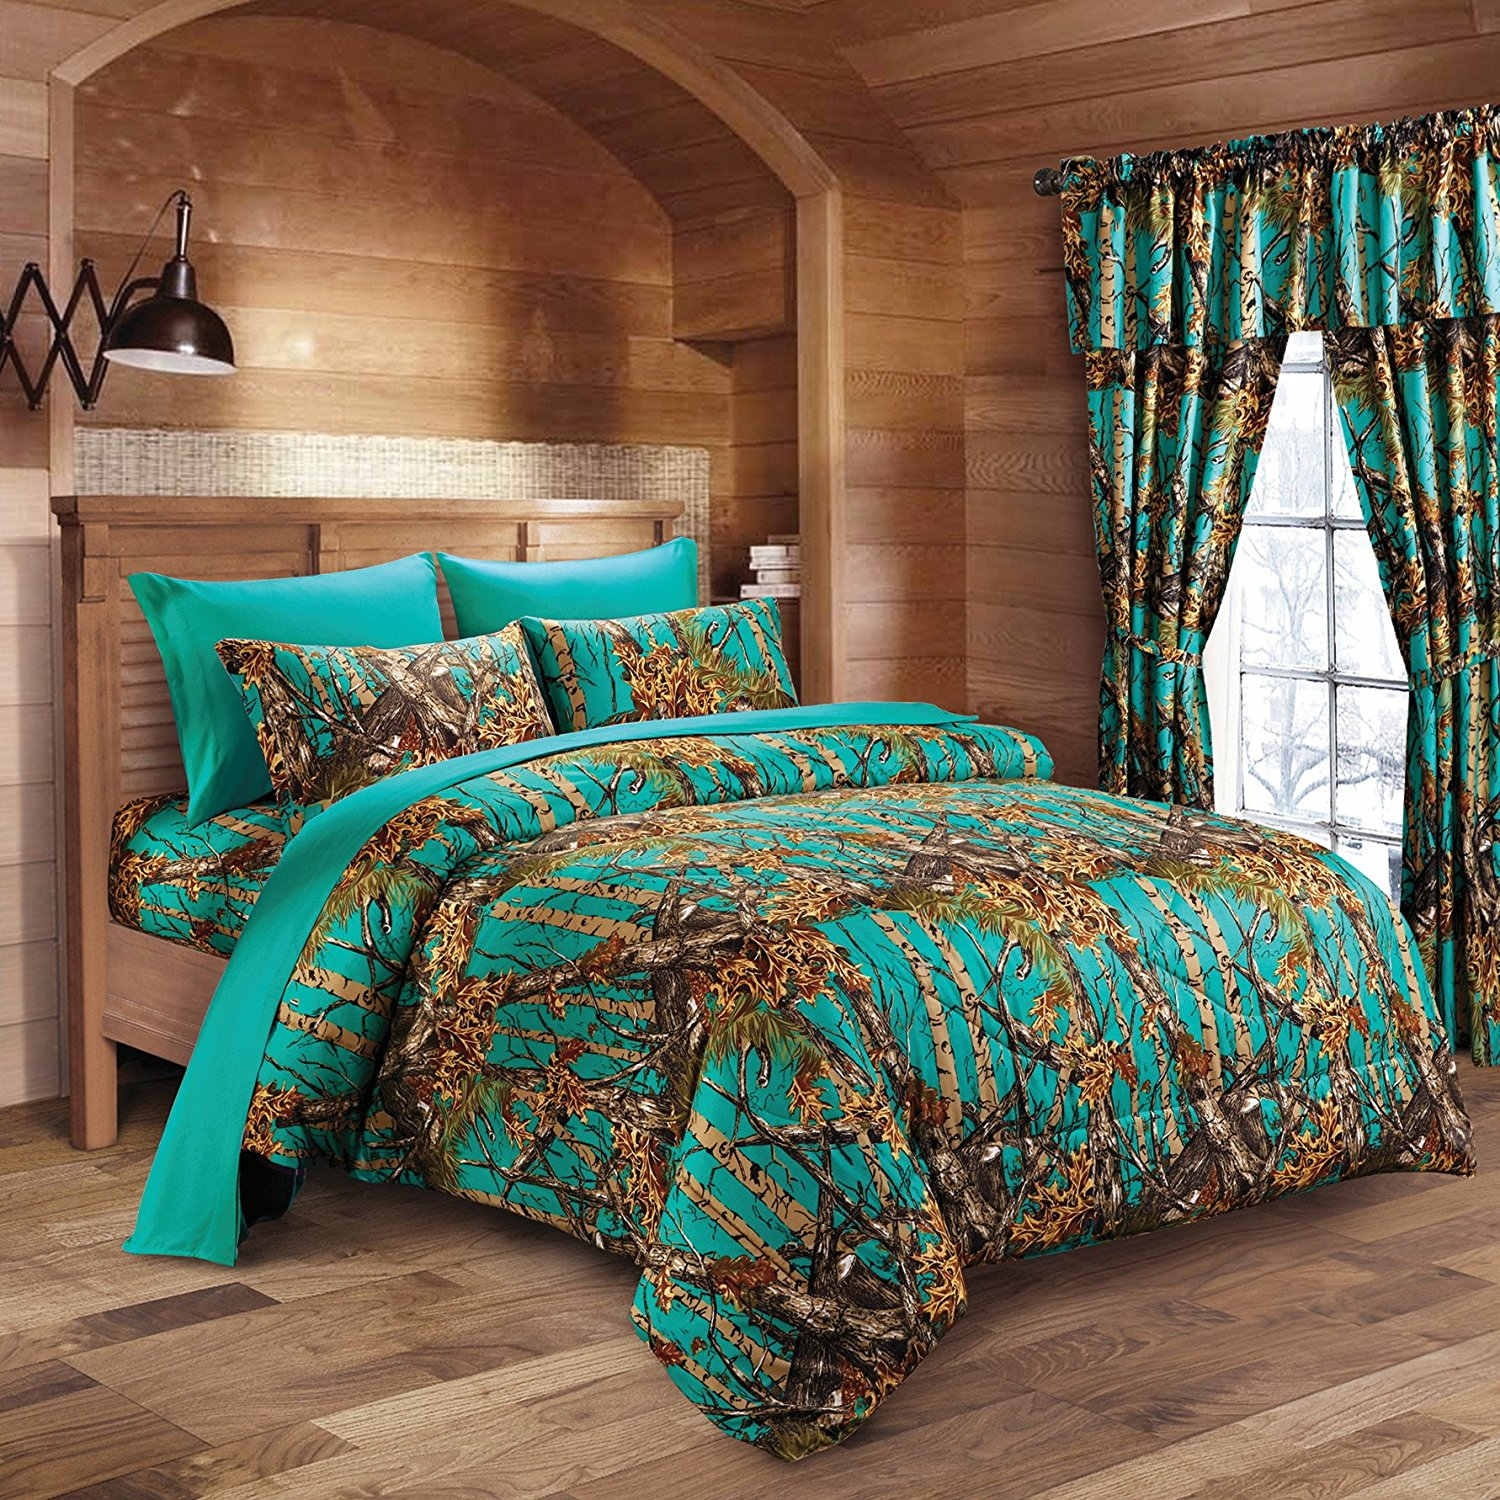 a9a5d456961 Get Quotations · 20 Lakes Hunter Camo Comforter